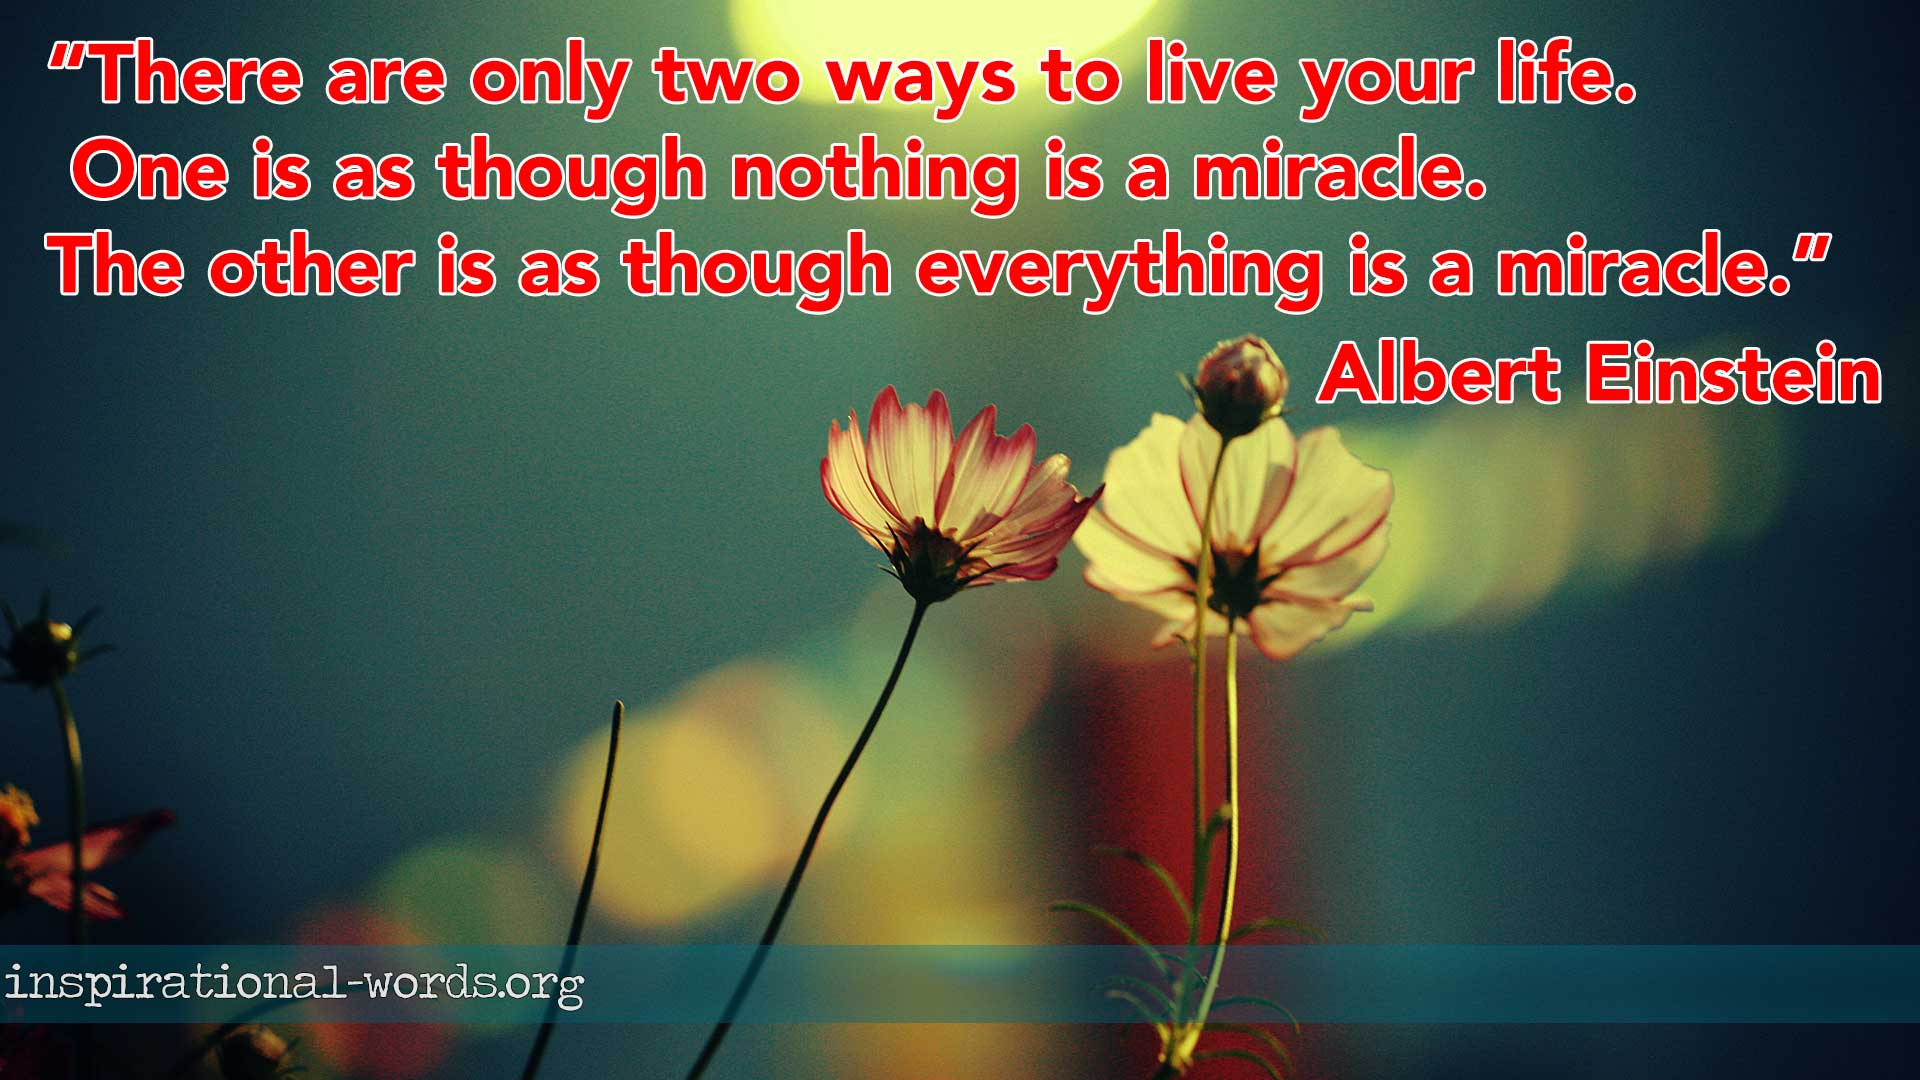 Inspirational Wallpaper Quote of the day: Albert Einstein